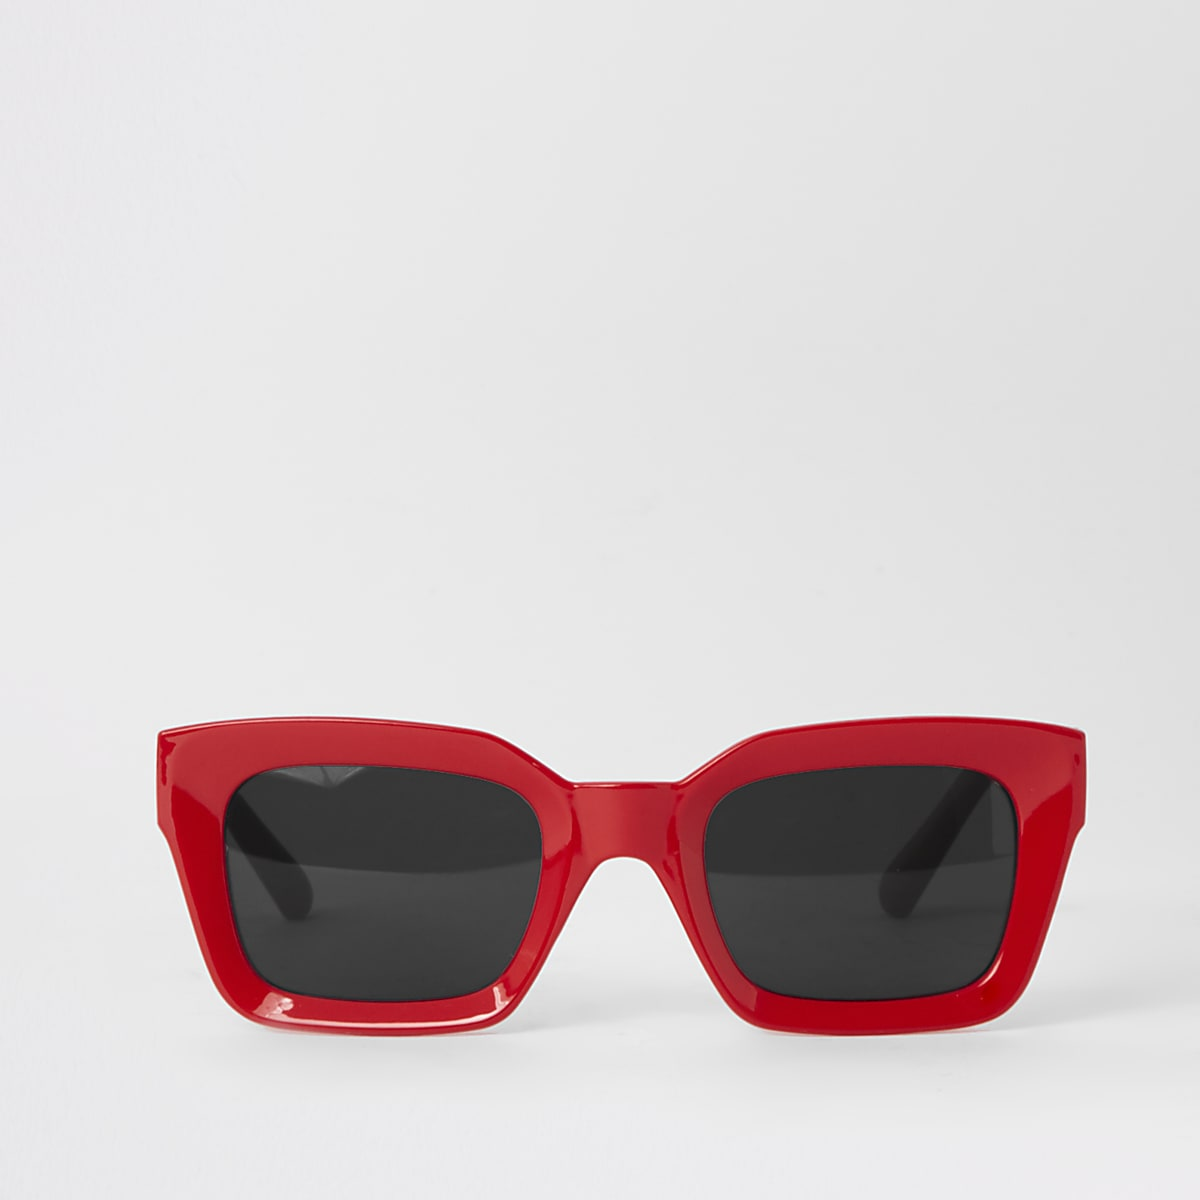 Red square frame sunglasses